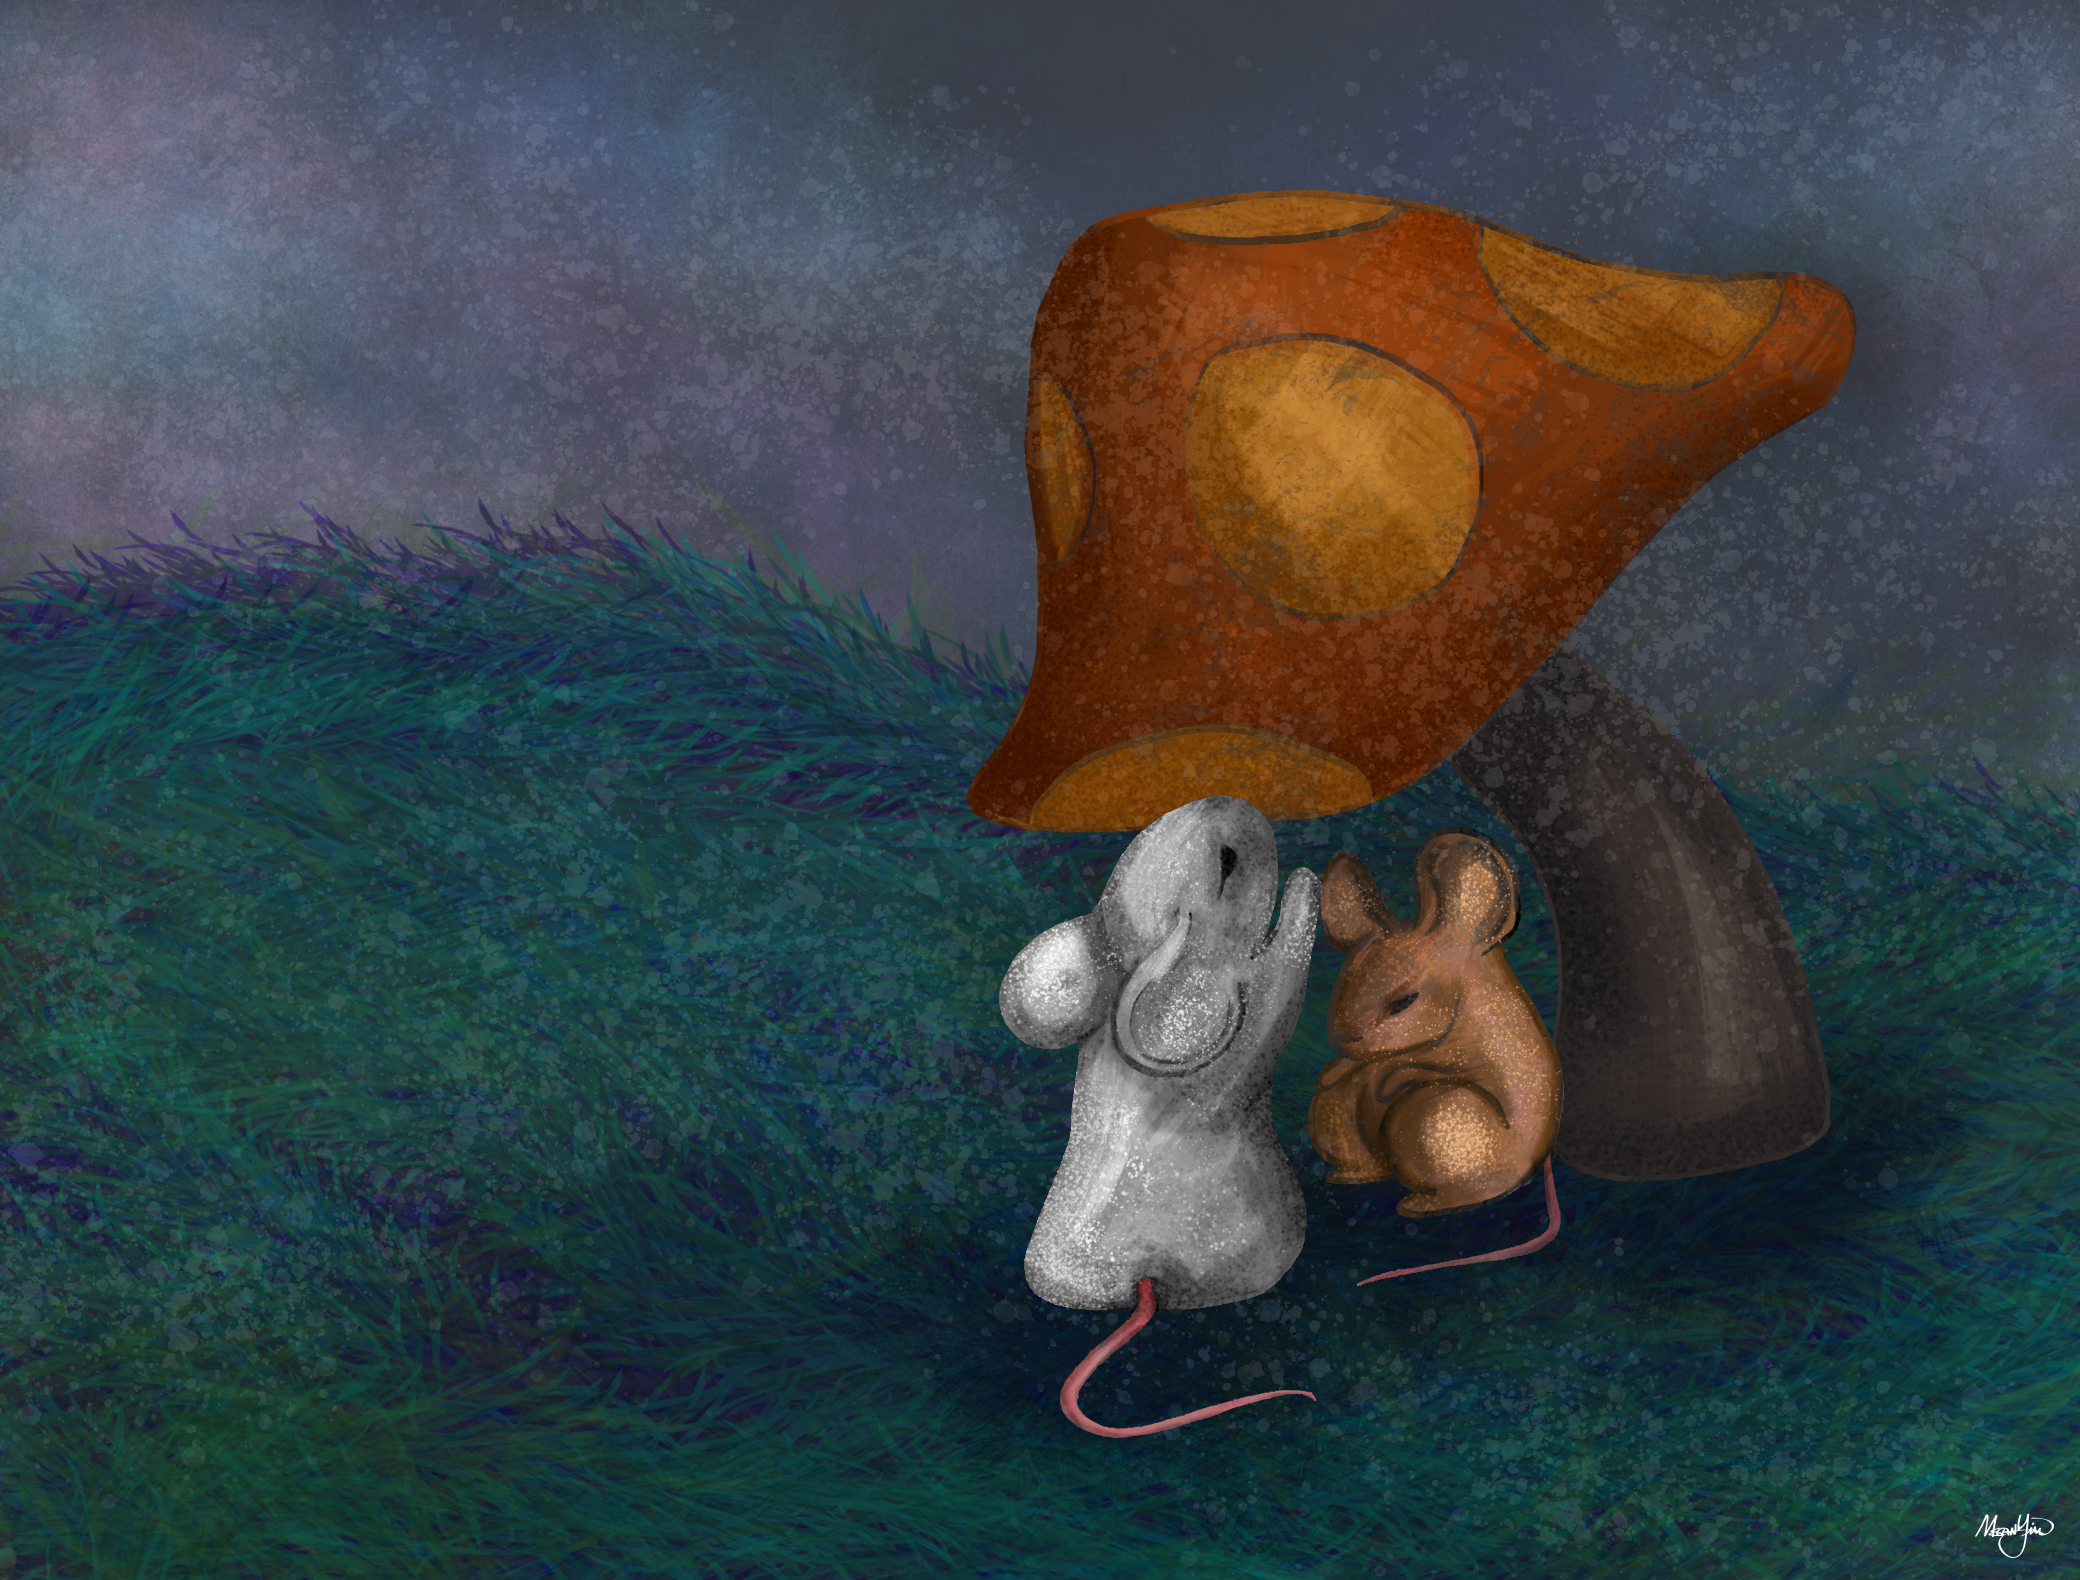 The Mice and the Mushroom